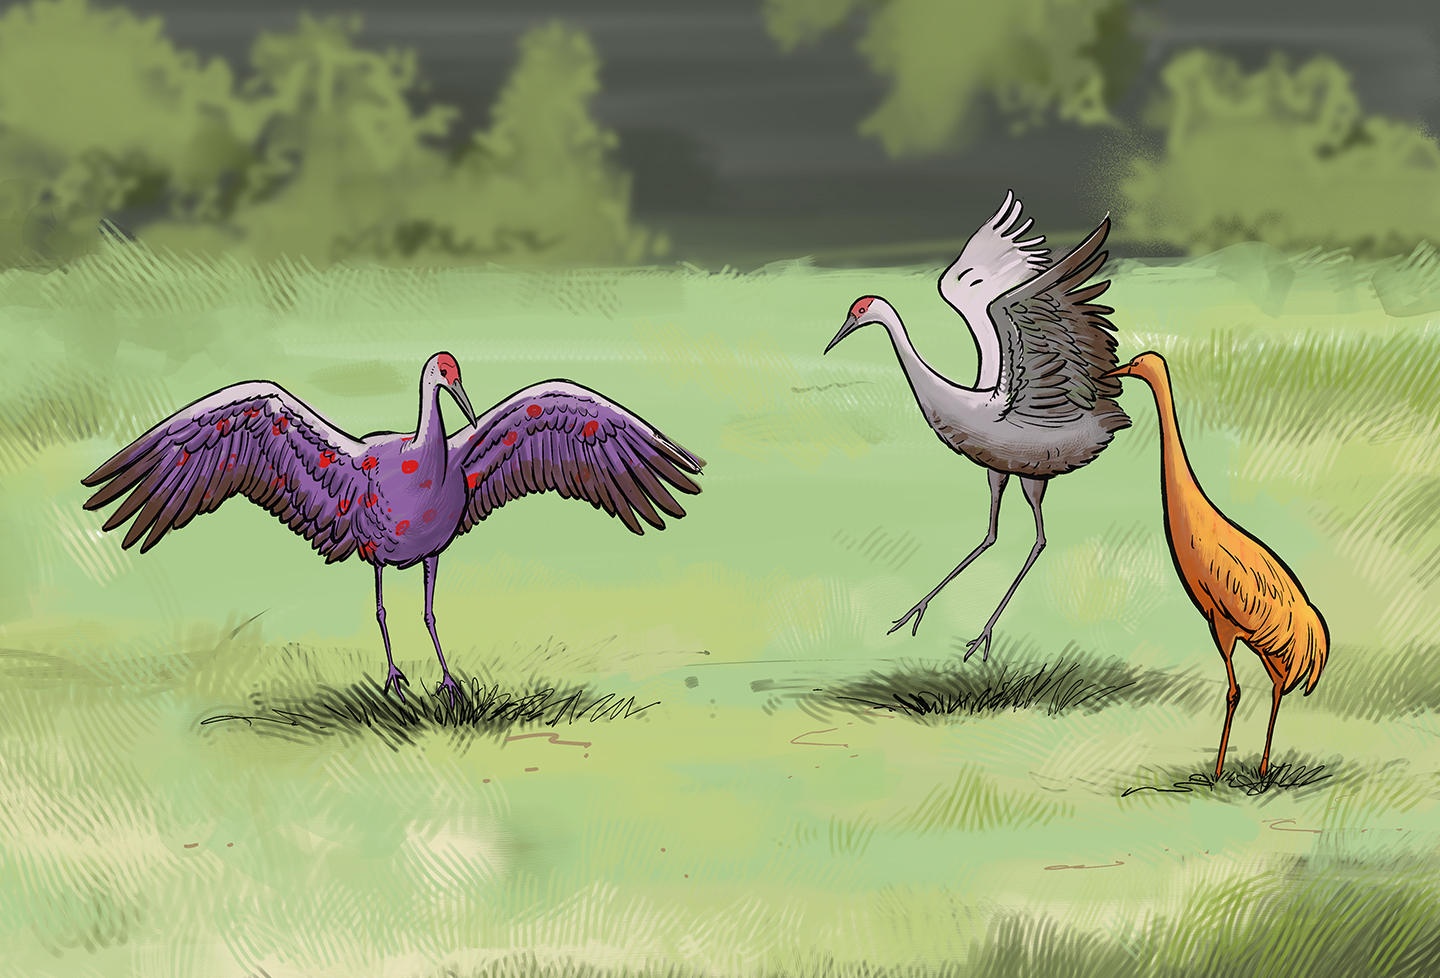 Three common cranes in a field, each a different color.